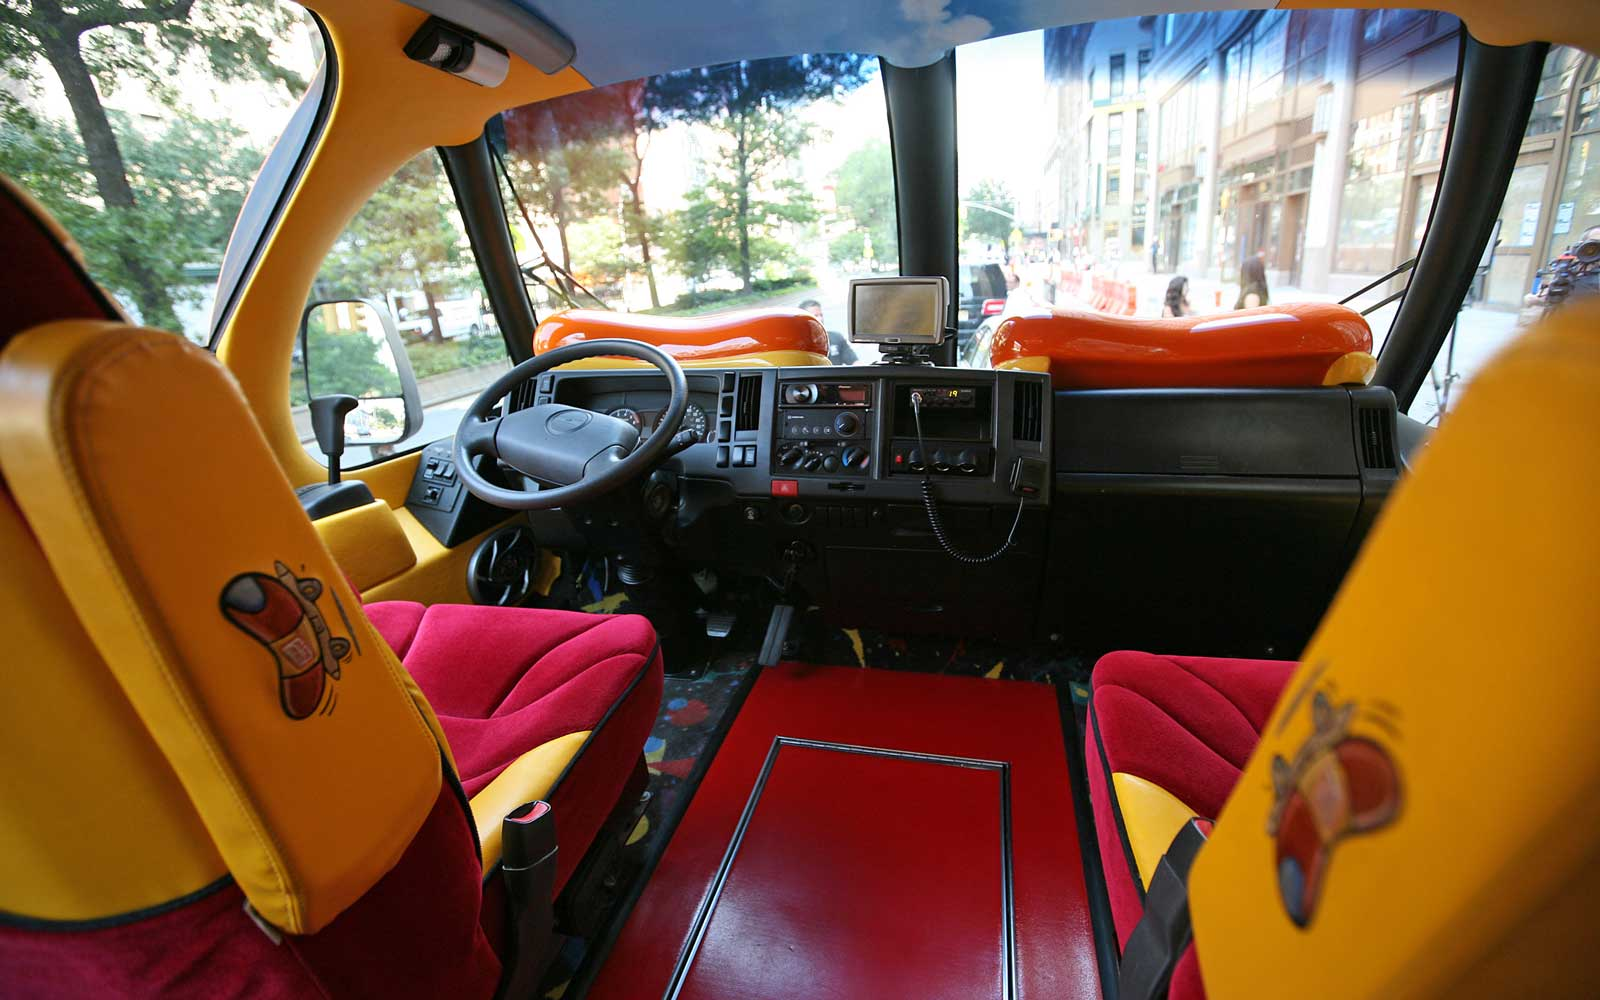 Oscar Mayer is looking for candidates to spend a year driving its Wienermobile.